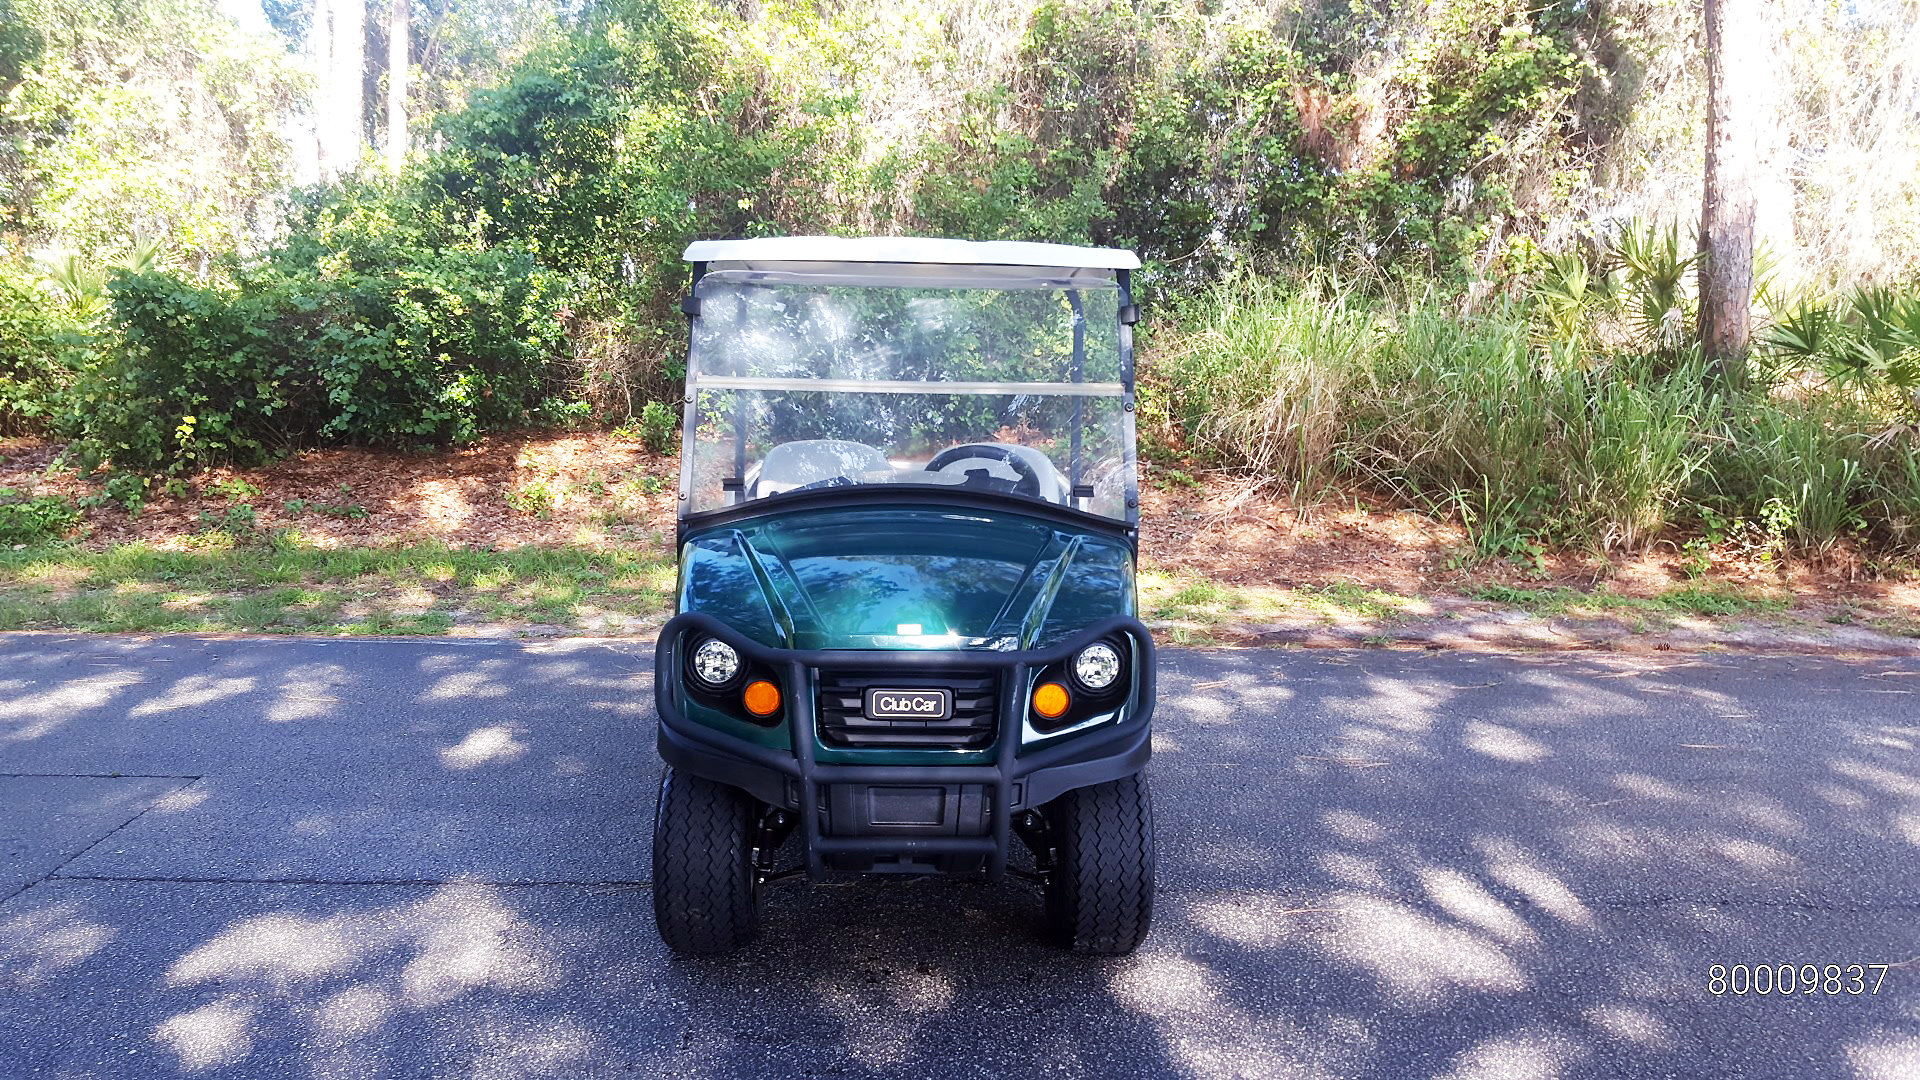 *Club Car Carryall 500 Gas